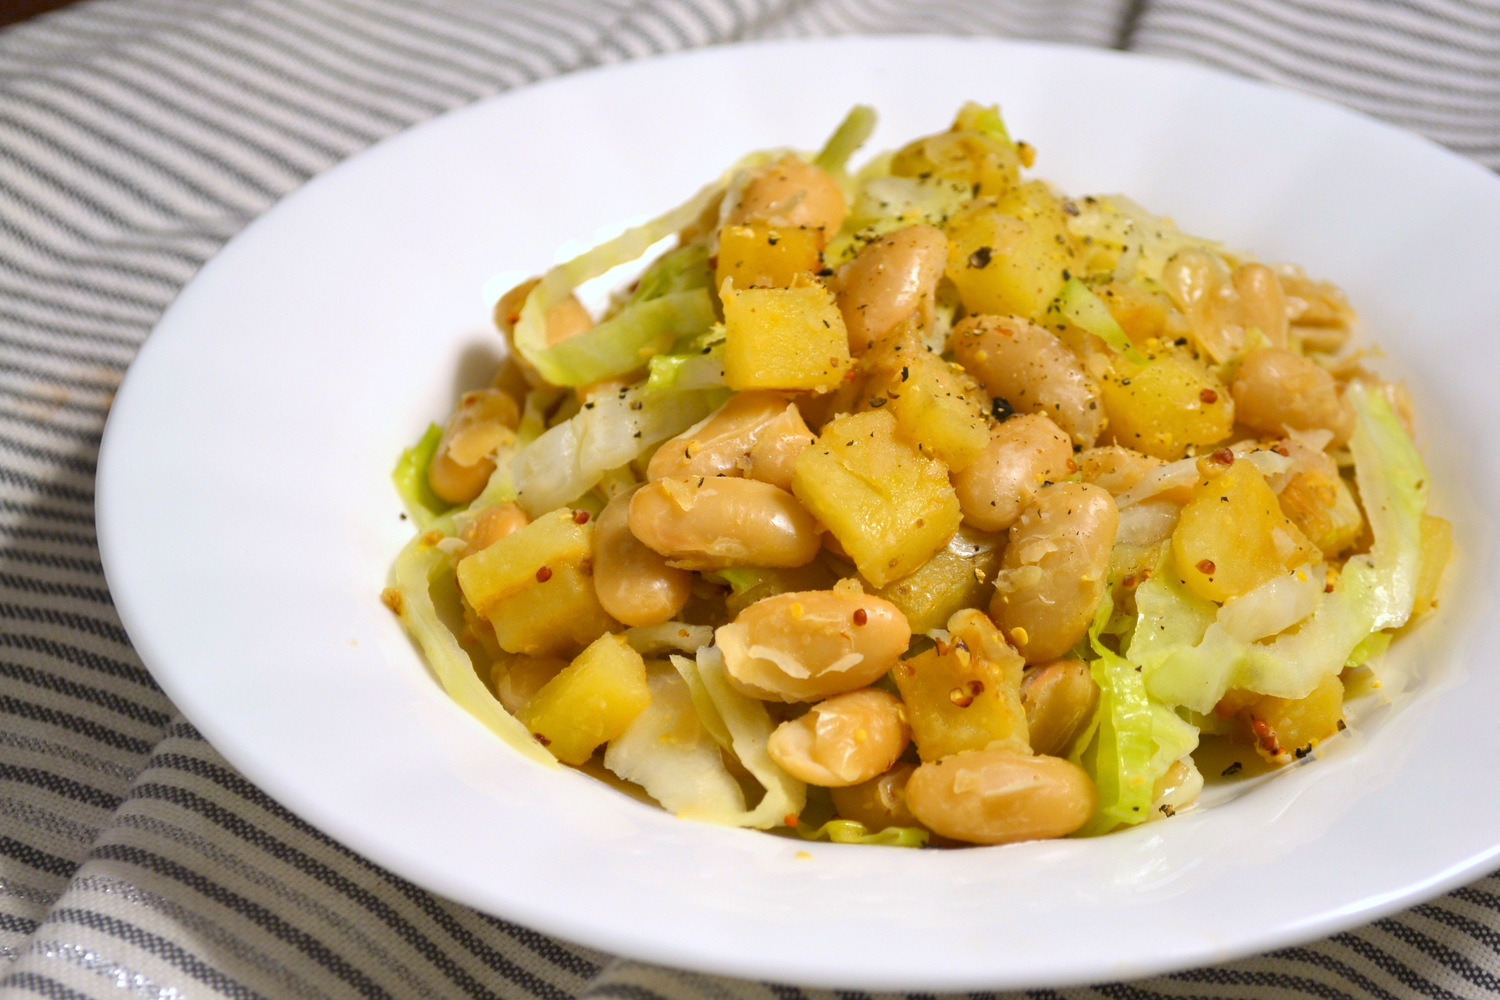 Test Kitchen: White Beans and Cabbage with Grainy Mustard and Beer